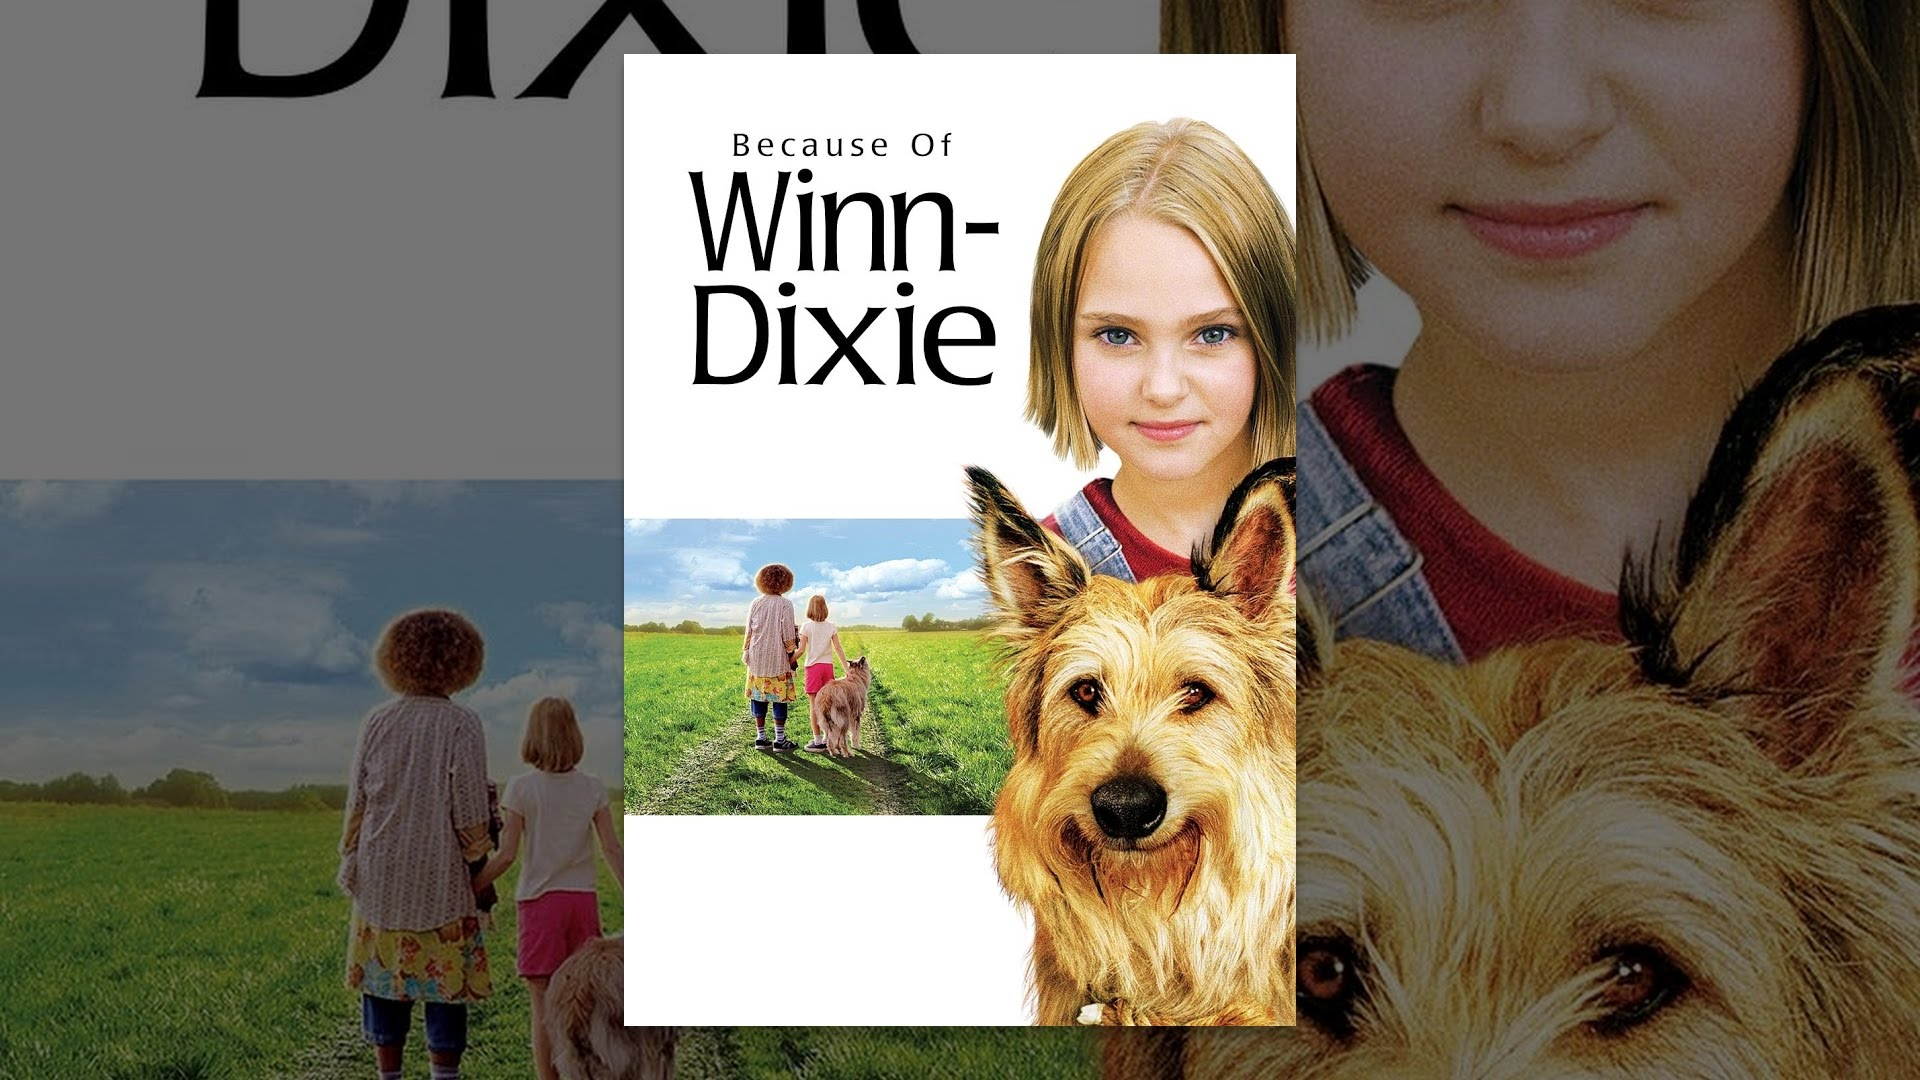 Because Of Winn Dixie Movie Stevie DewberryBecause Of Winn Dixie Stevie Dewberry